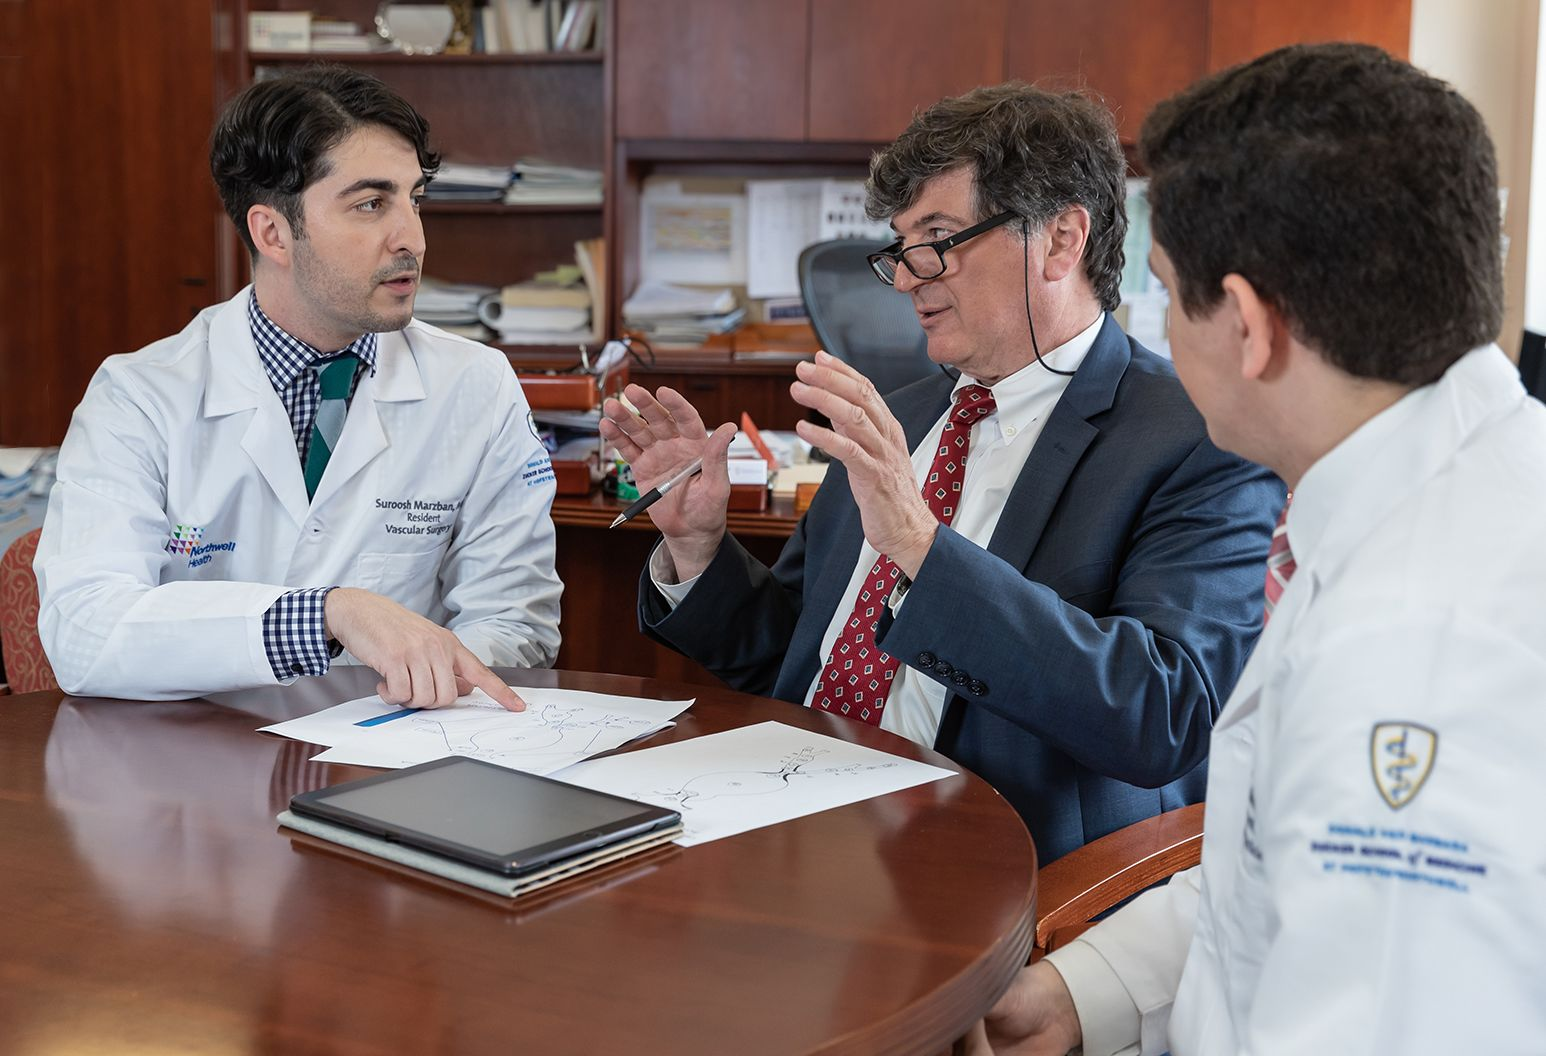 Group of physicians talking around a table